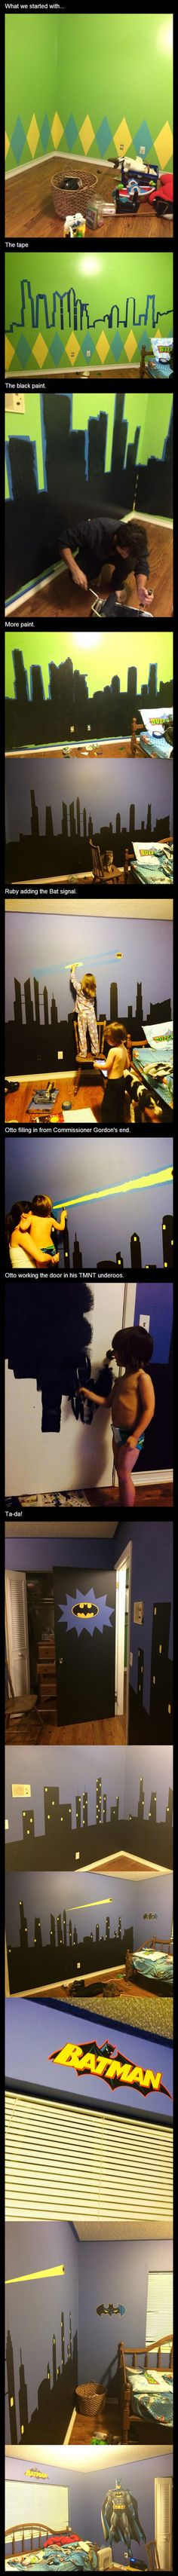 How To Turn Your Kid's Room Into An Awesome Batman Room! – 14 Pics